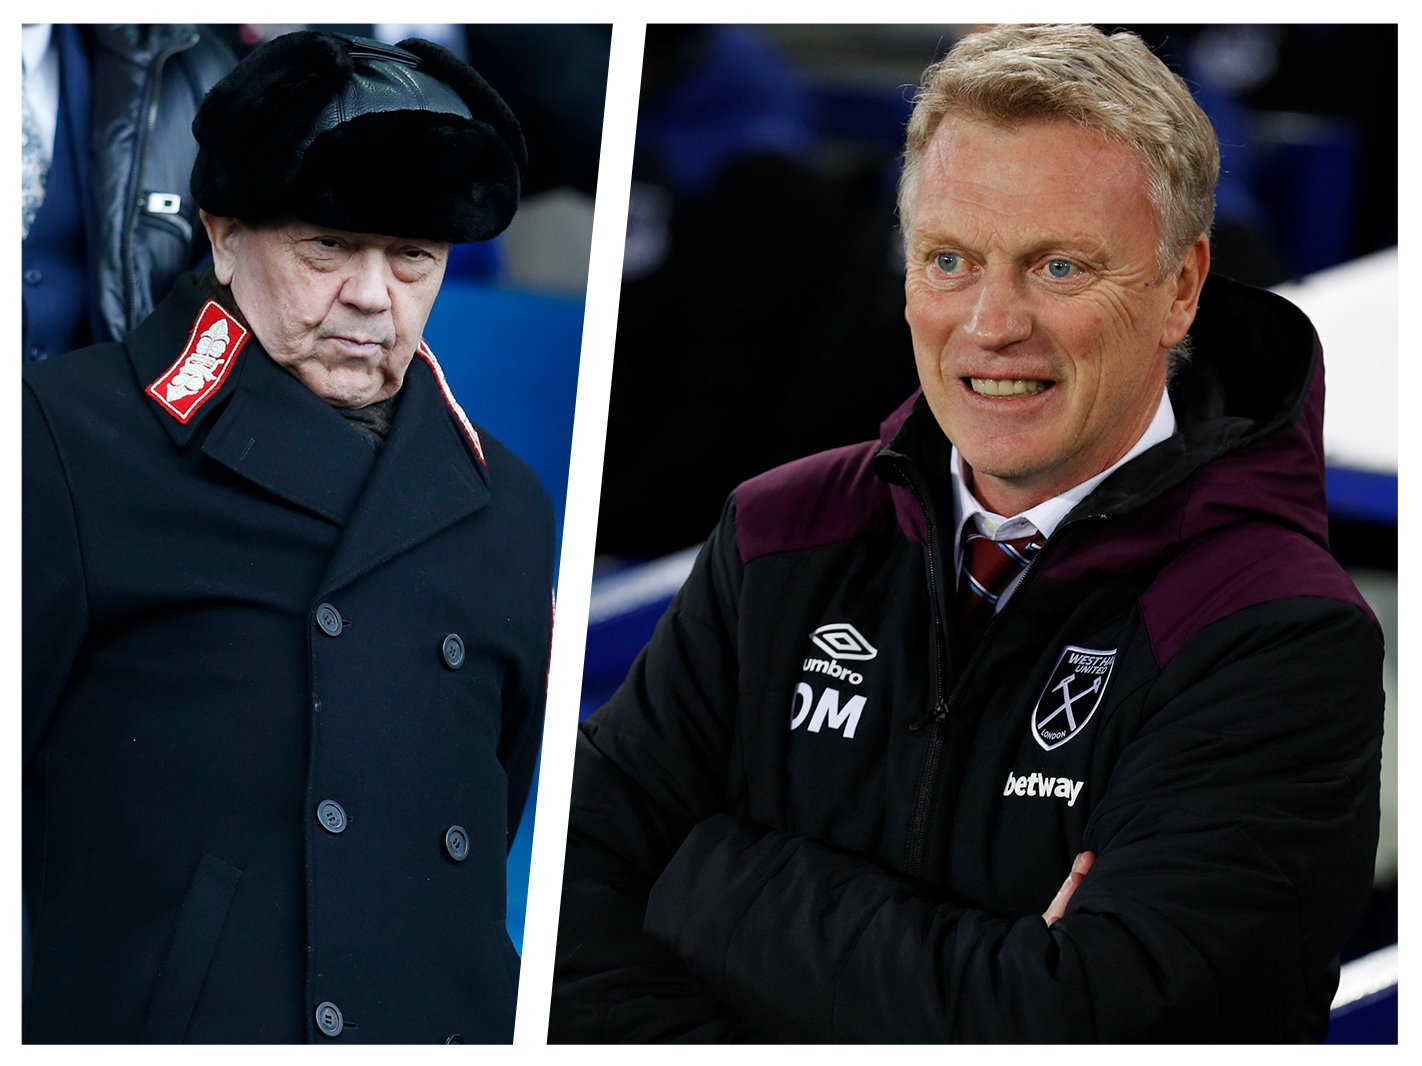 David Moyes' increasing power at West Ham is a blessing and a curse